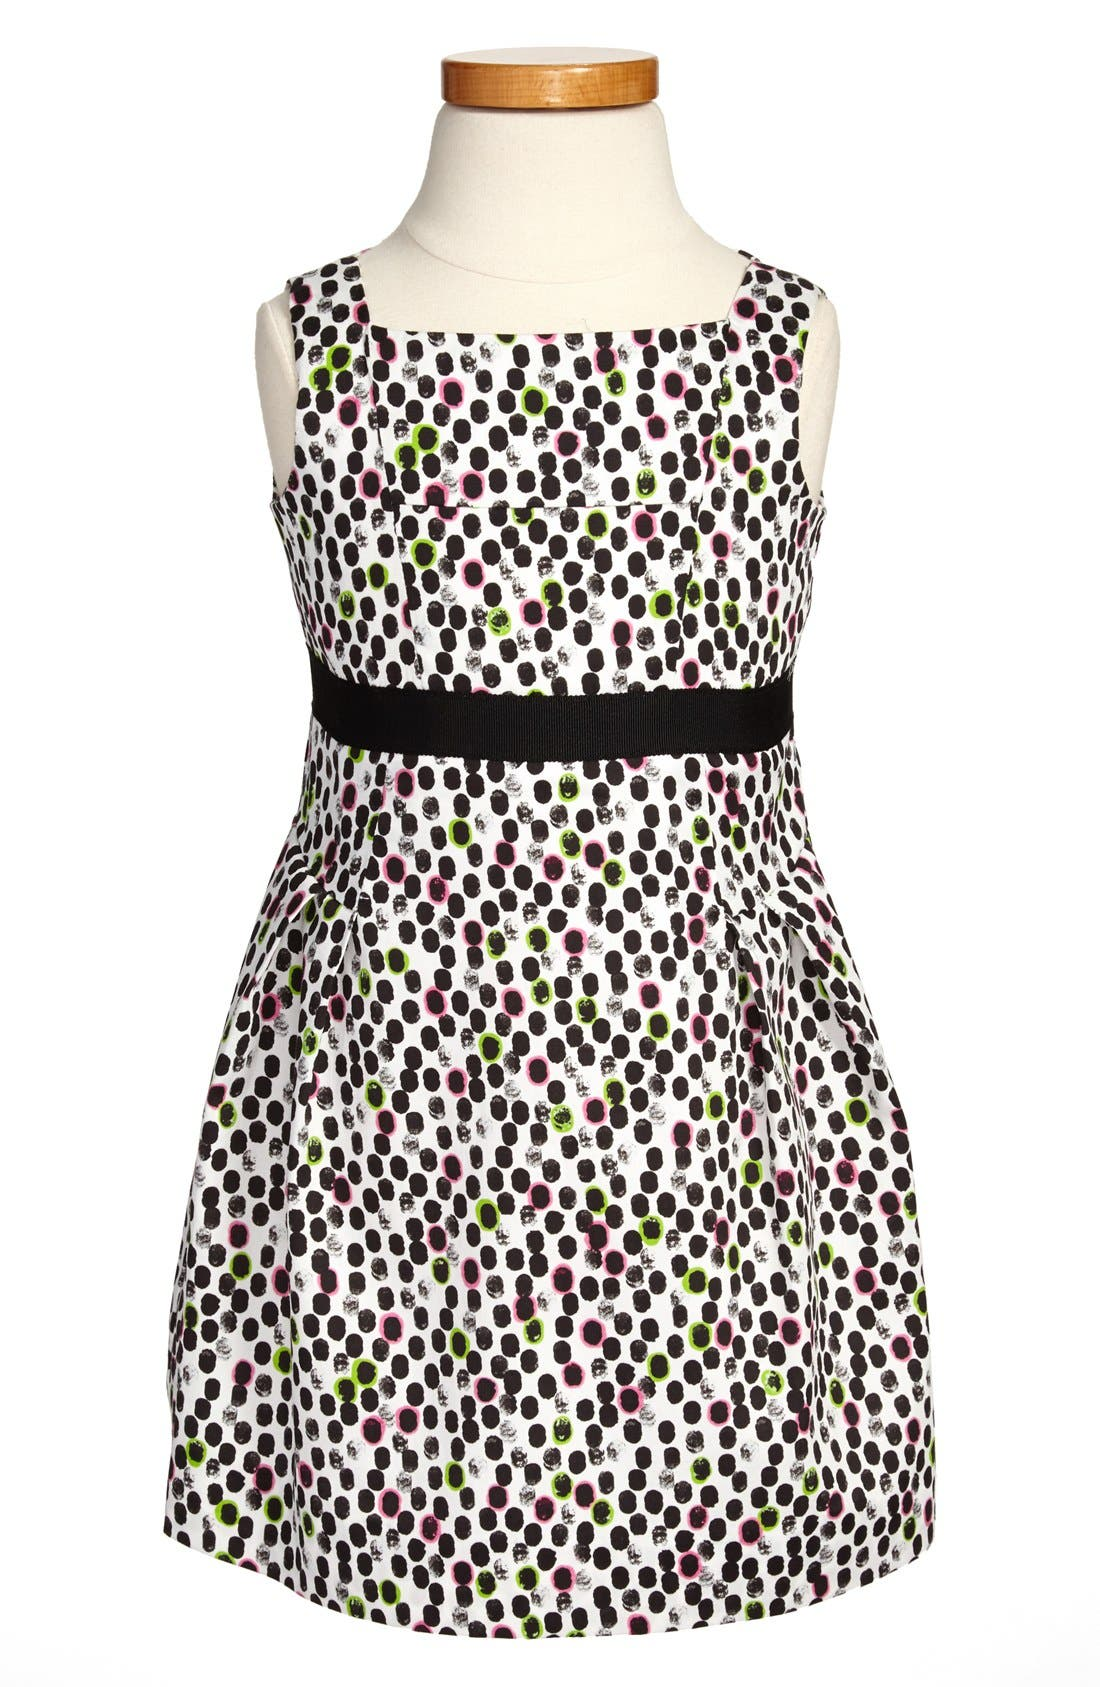 Main Image - Milly Minis Ocelot Print Shift Dress (Toddler Girls, Little Girls & Big Girls)